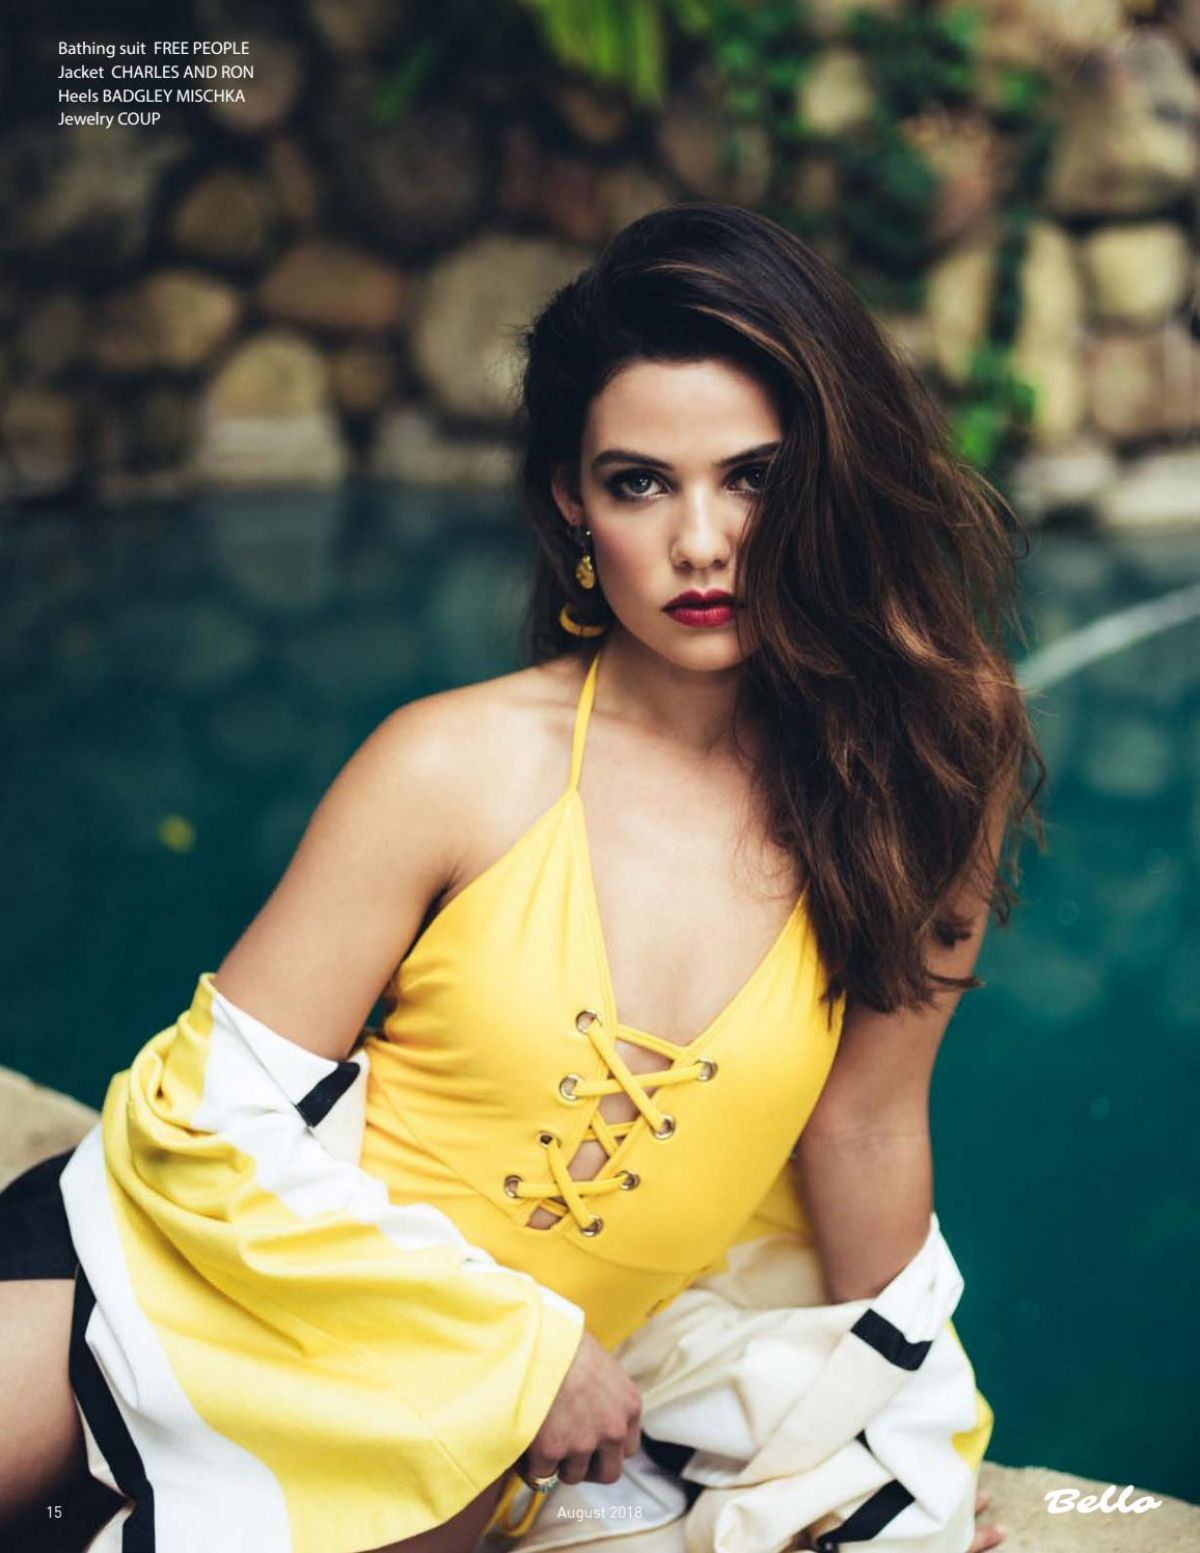 danielle-campbell-in-bello-magazine-august-2018-issue-20.jpg